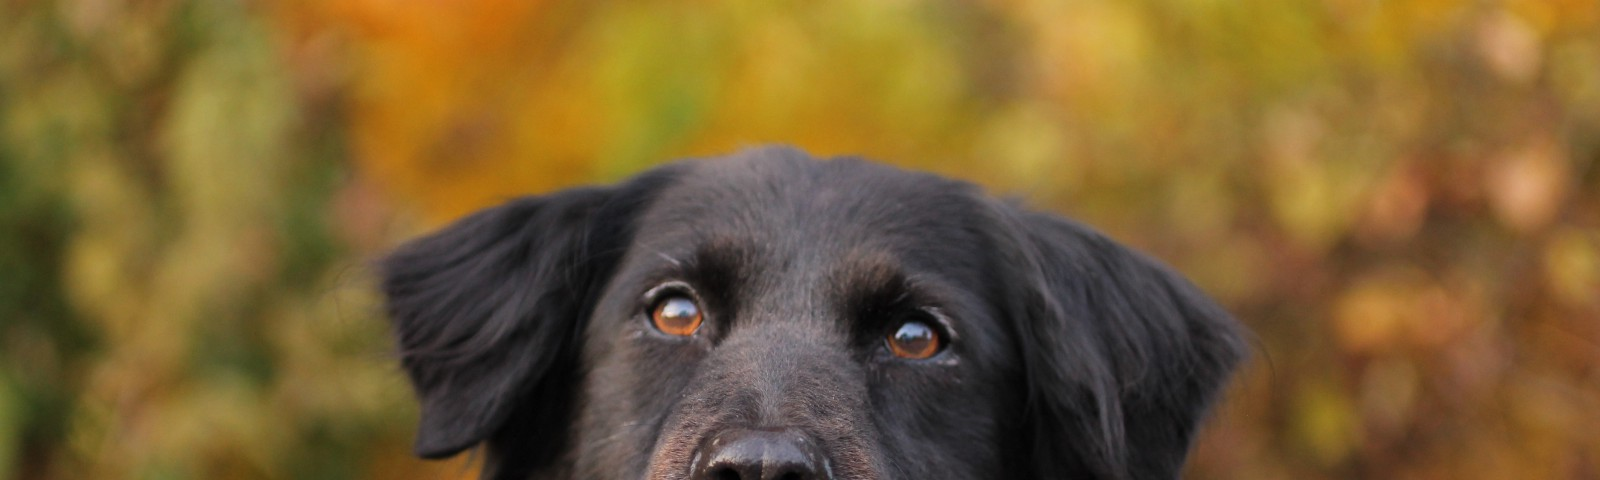 A black dog facing forward with their mouth slightly open with an orange and green blurry fall background.